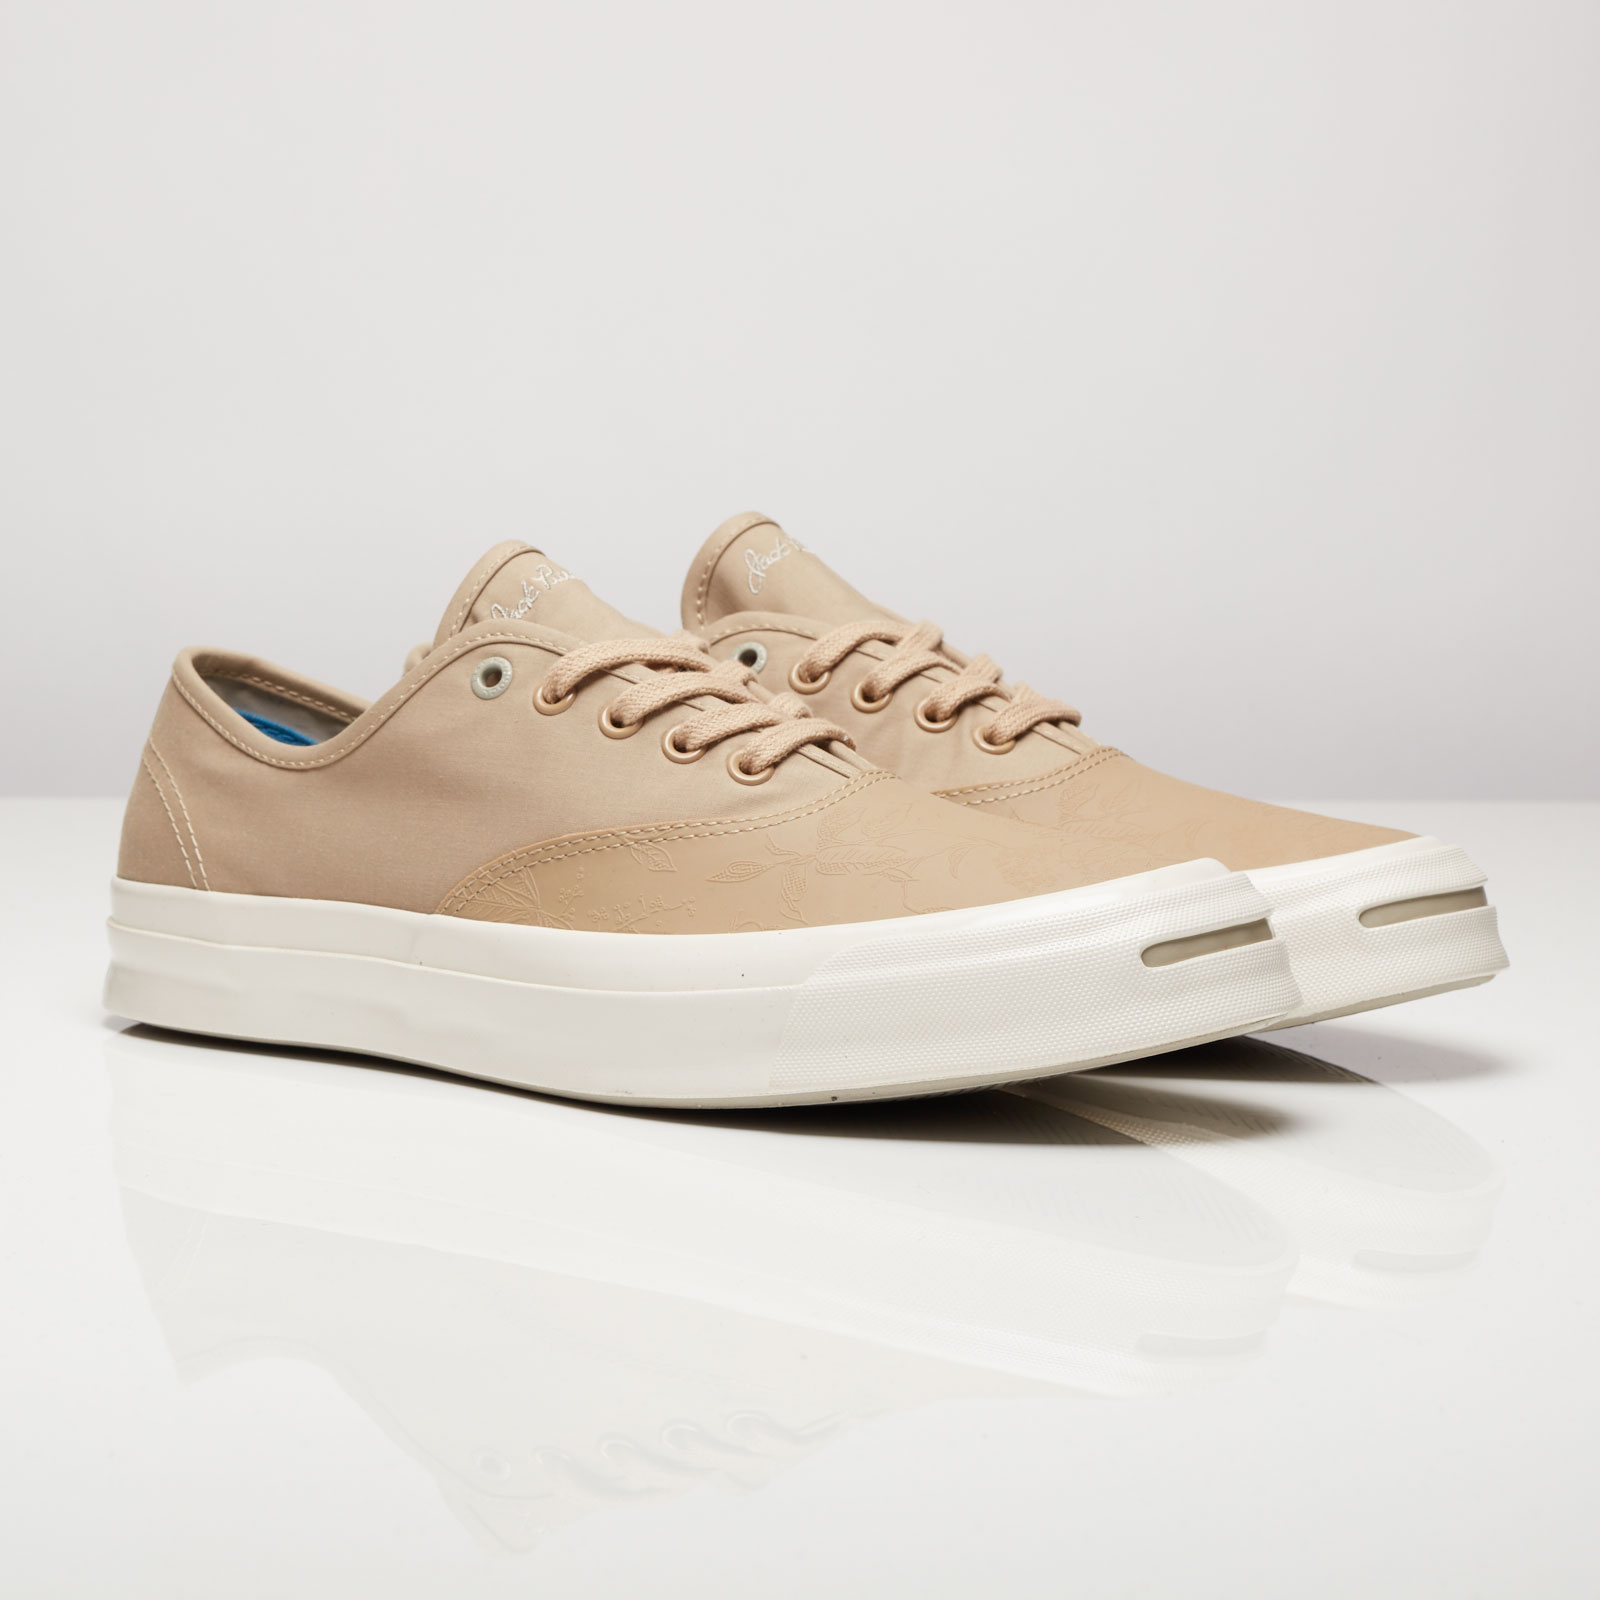 7a20b23dcbea06 Converse Jack Purcell Signature CVO Ox - 153065c - Sneakersnstuff ...